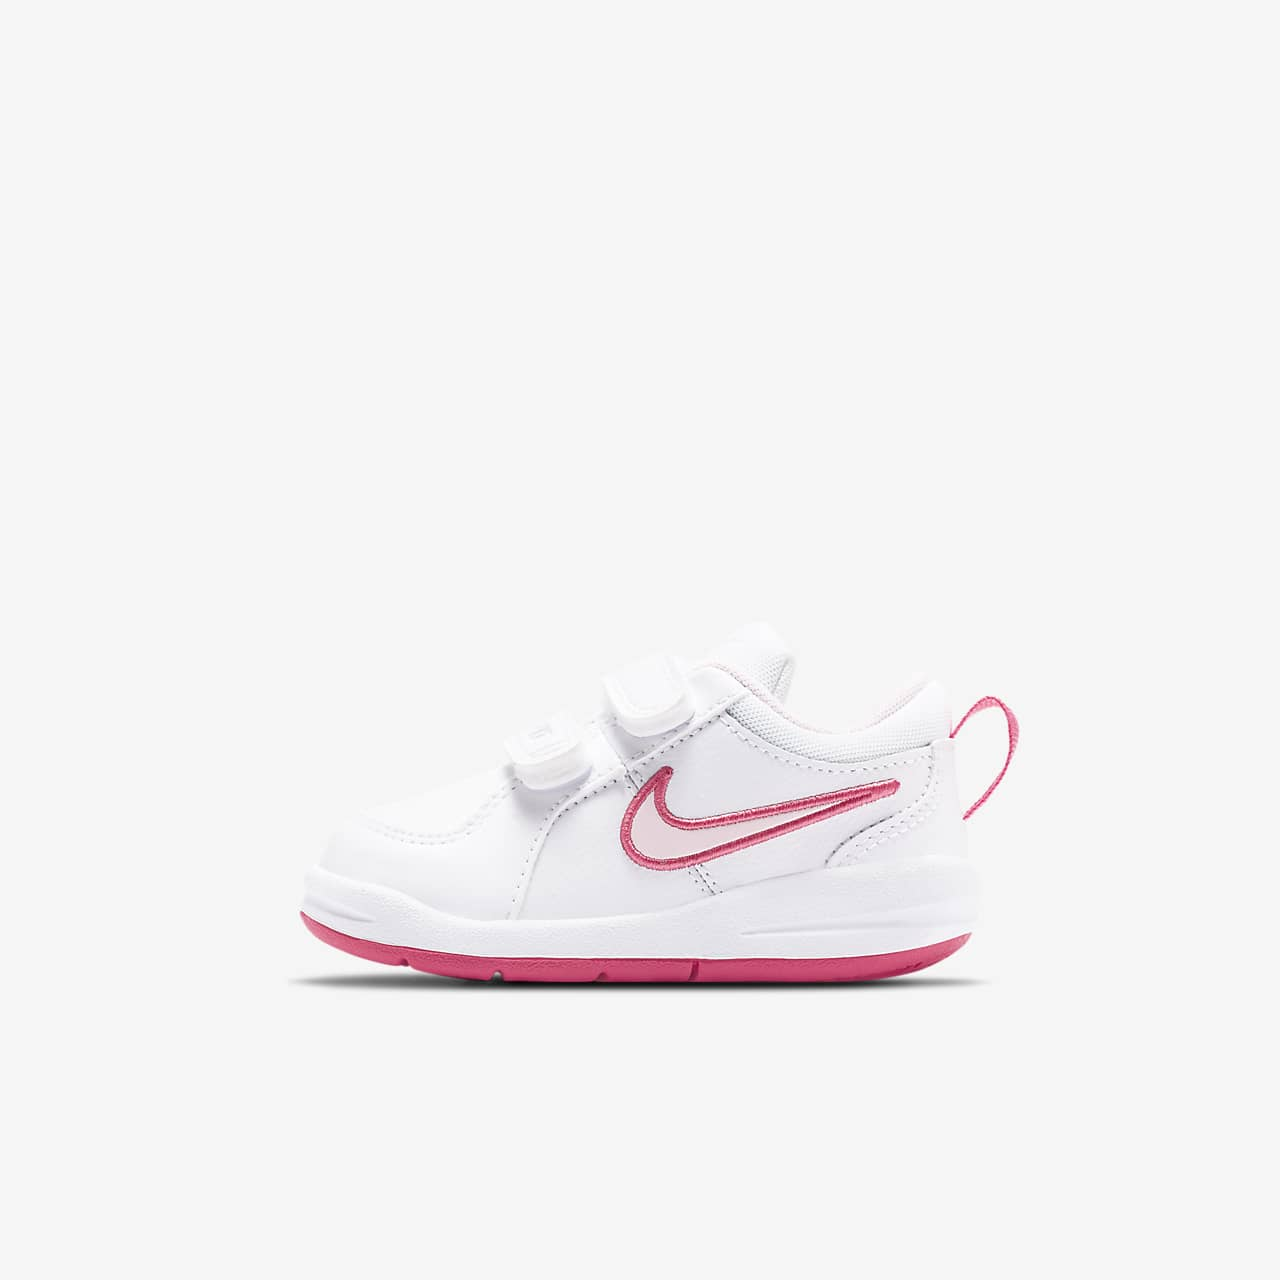 ... Nike Pico 4 (1.5-9.5) Baby & Toddler Girls' Shoe